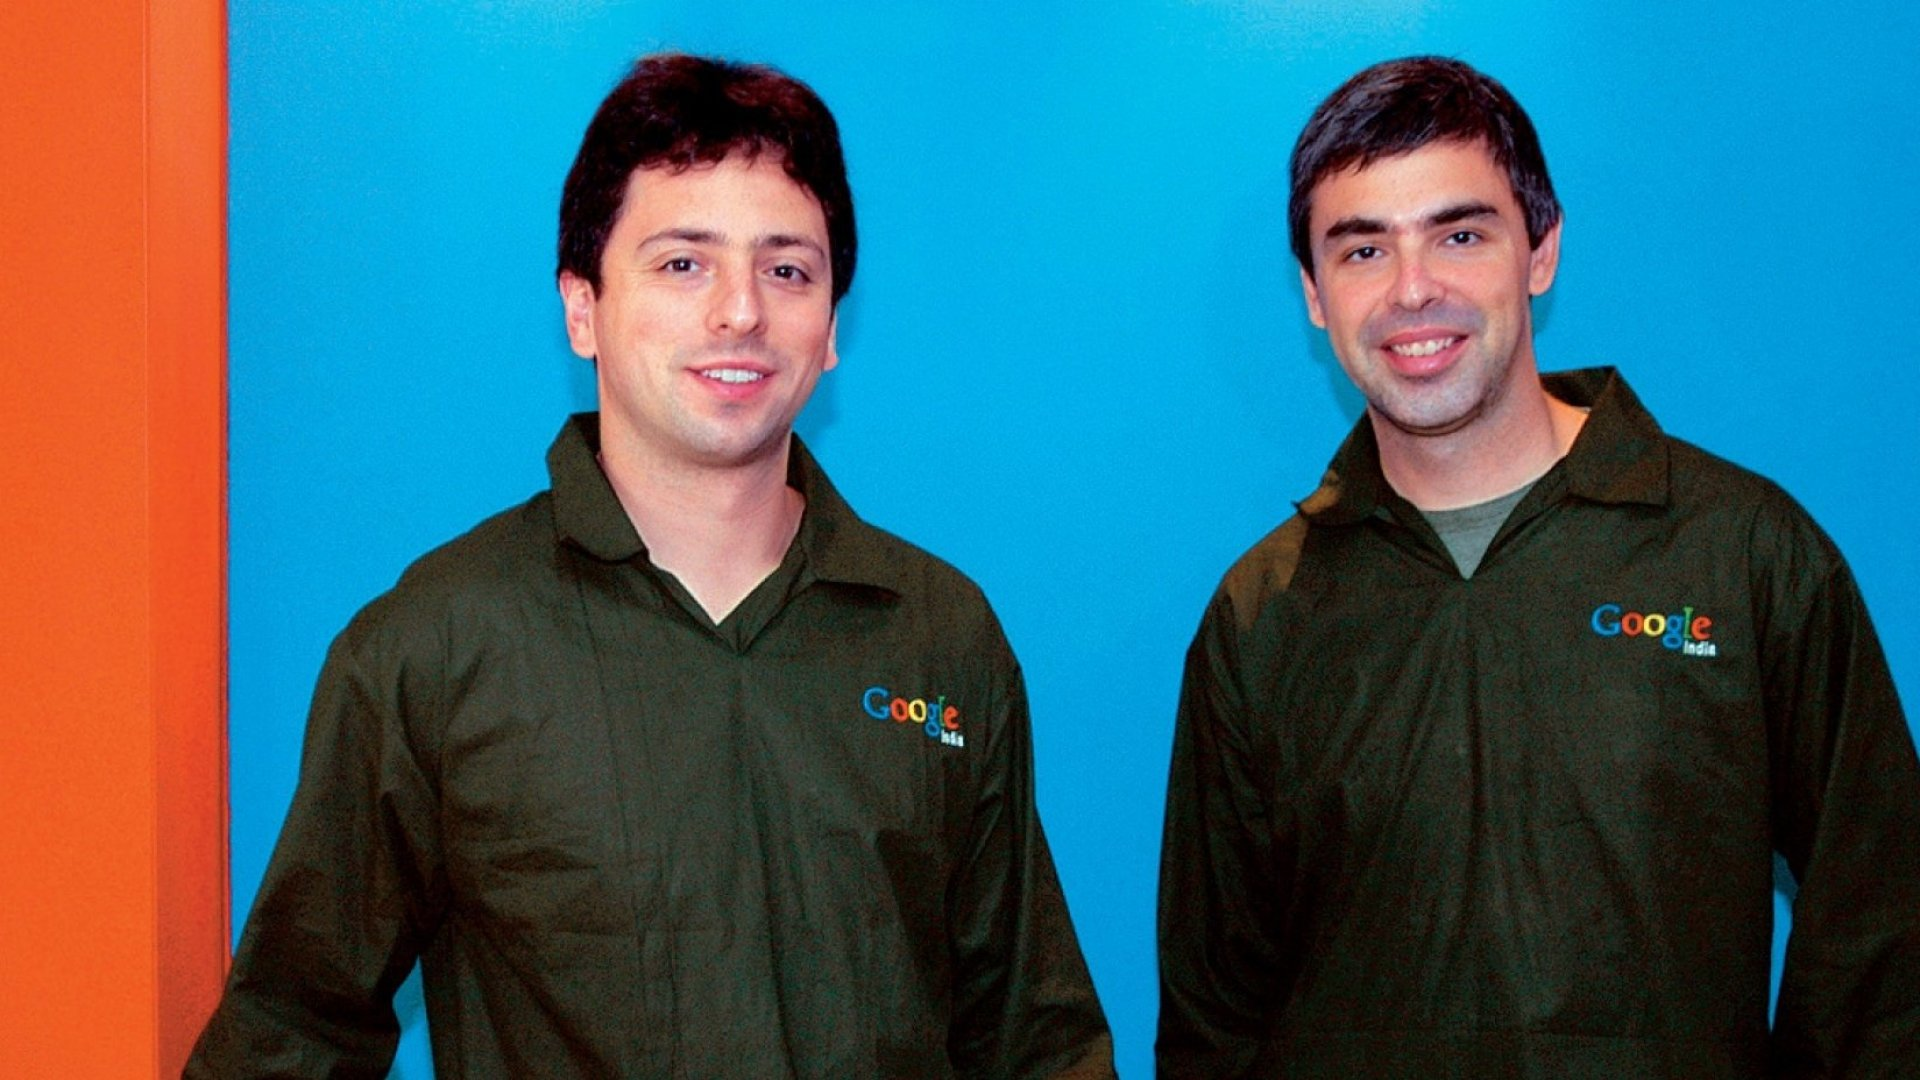 Google Co-founders Larry Page and Sergey Brin Have Relinquished Control of Parent Company Alphabet to CEO Sundar Pichai